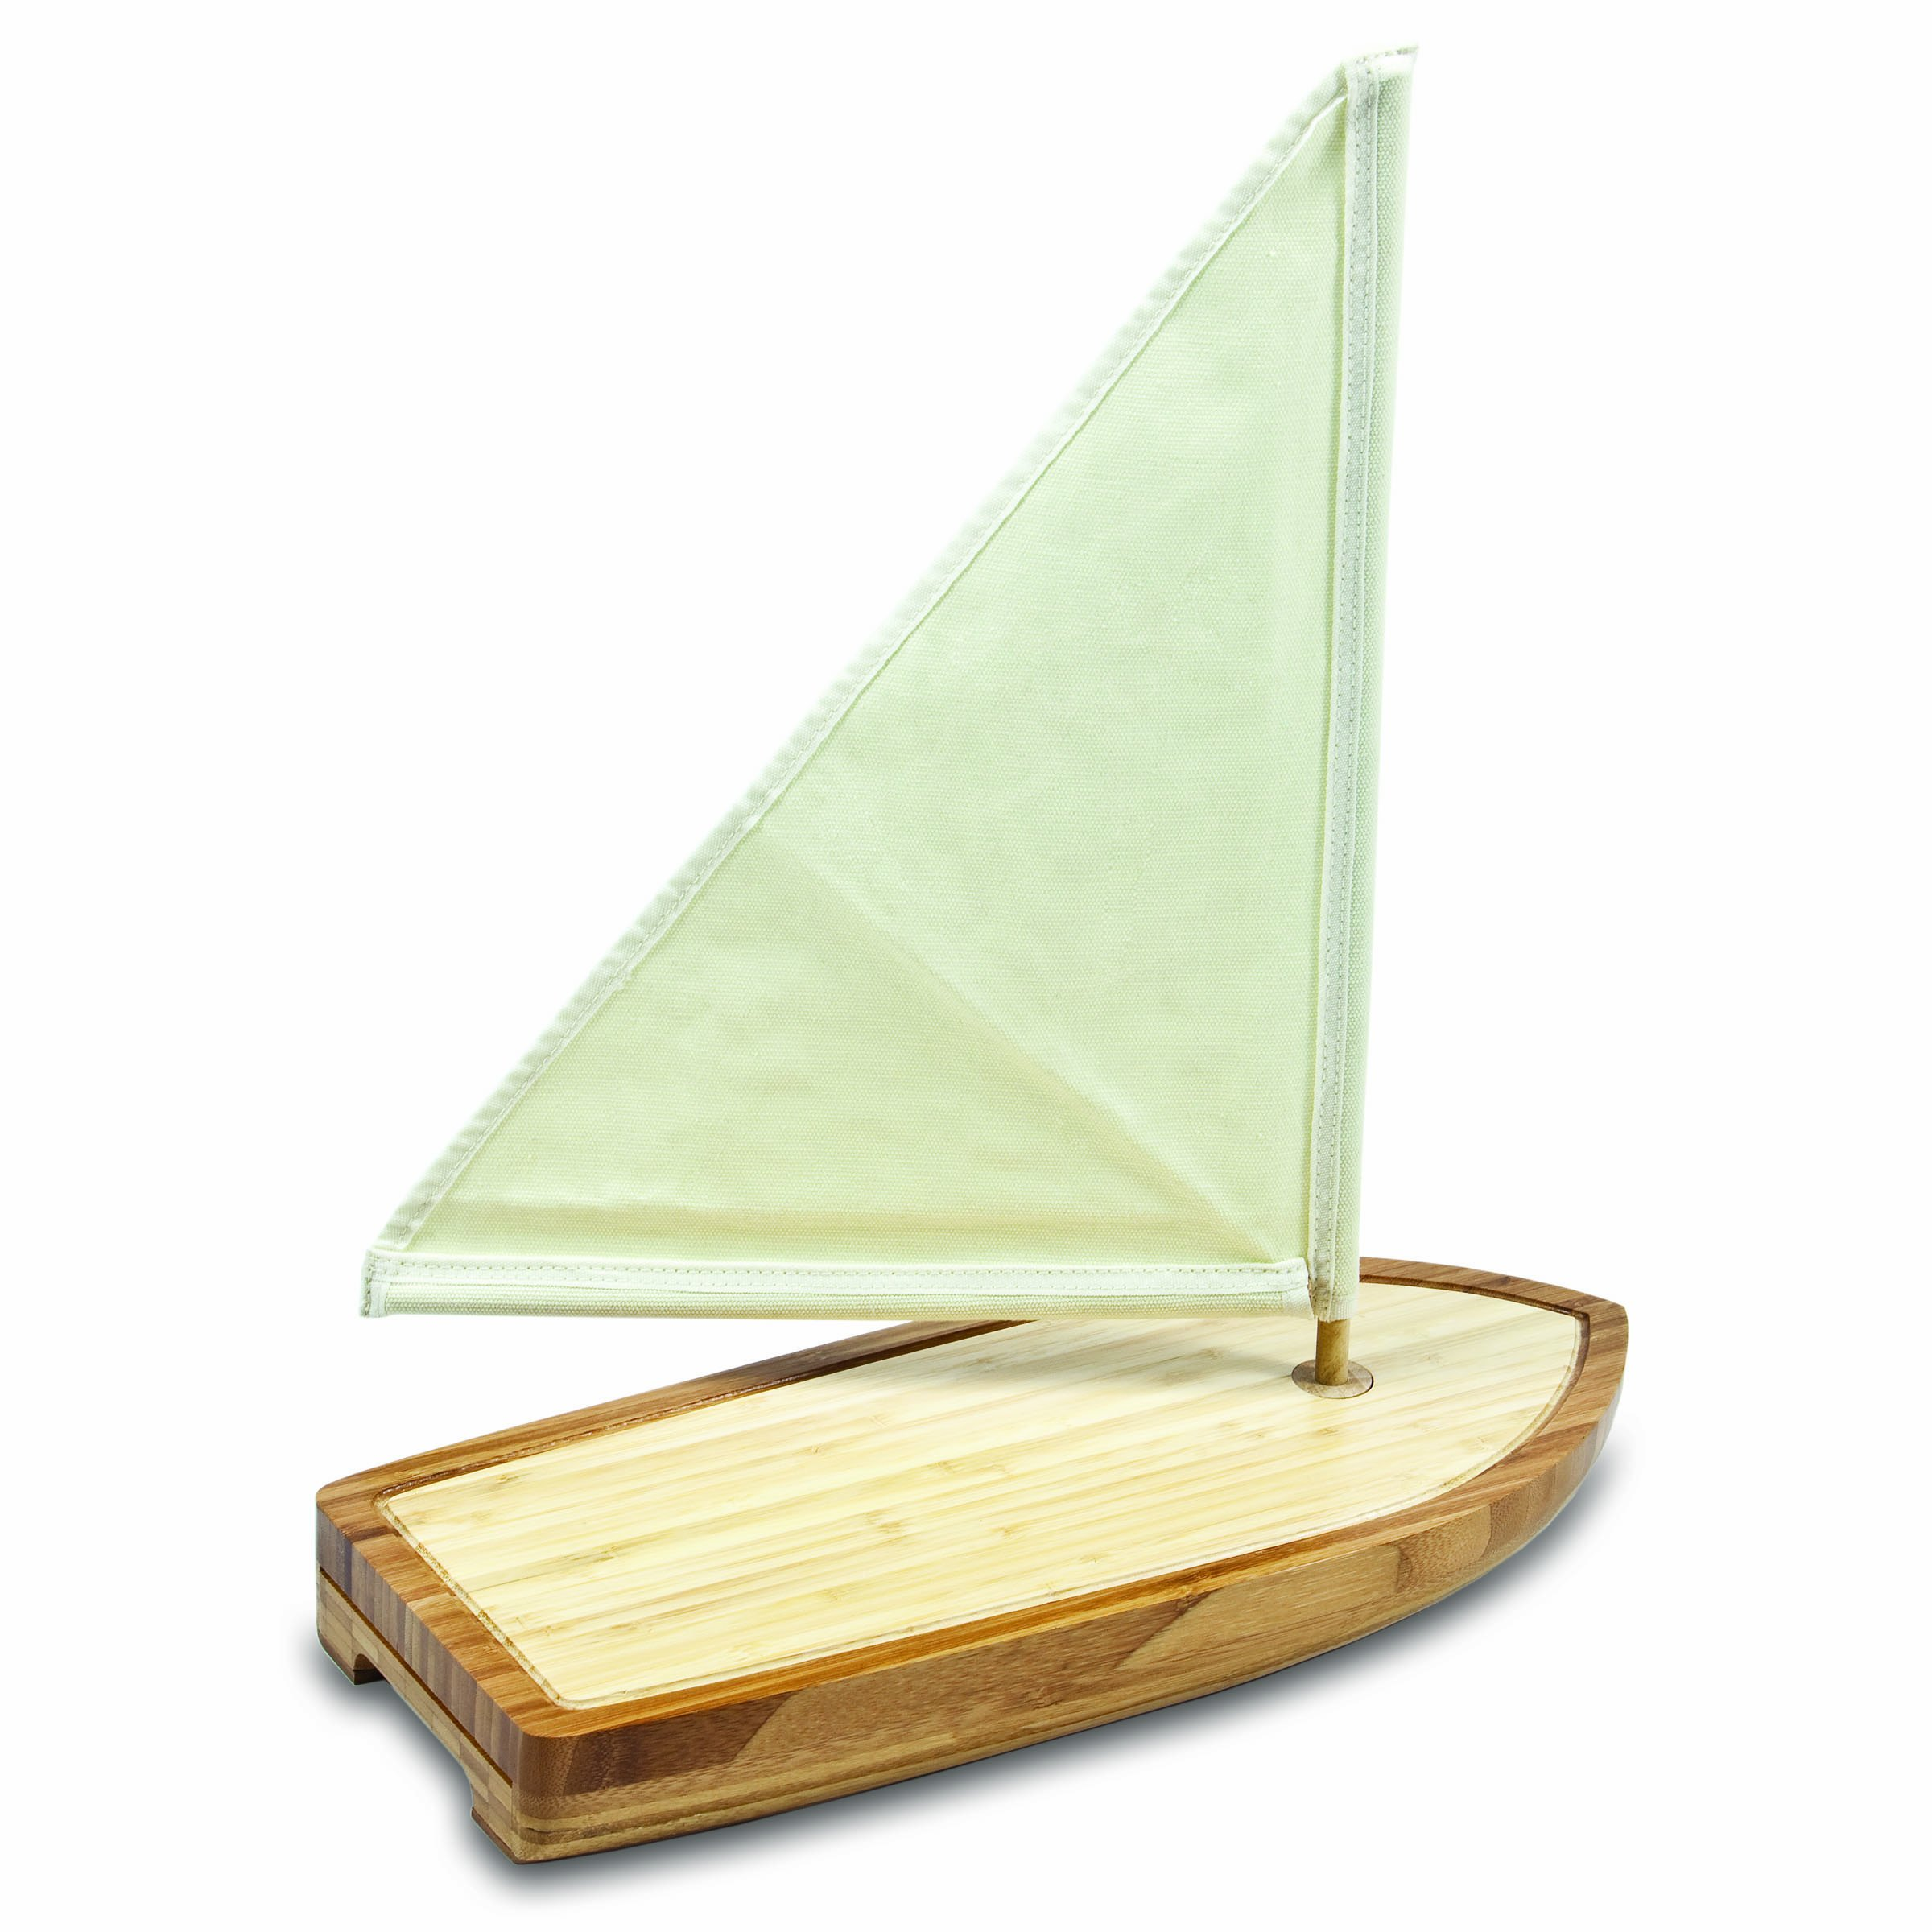 TOSCANA - a Picnic Time Brand Bamboo Sailboat Cheese Board and Tool Set